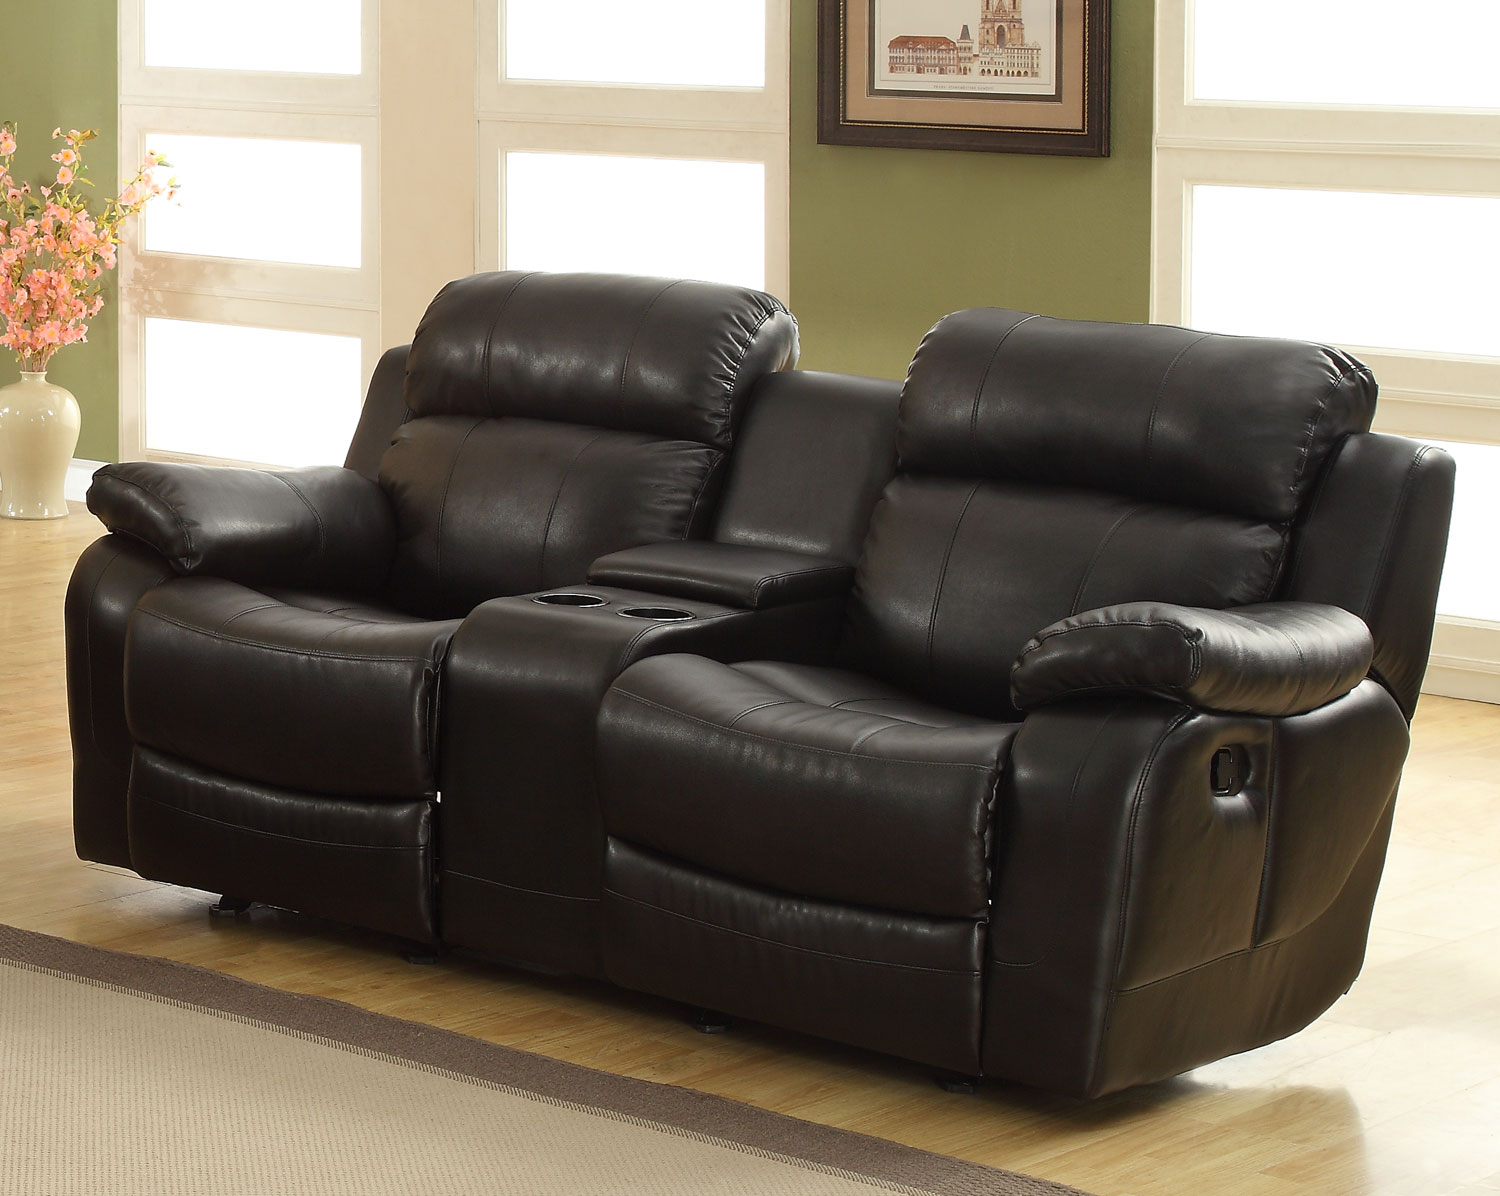 Perfect Leather Sofa Matching Recliner 88 With Additional Contemporary Sofa Inspiration with Leather Sofa Matching Recliner